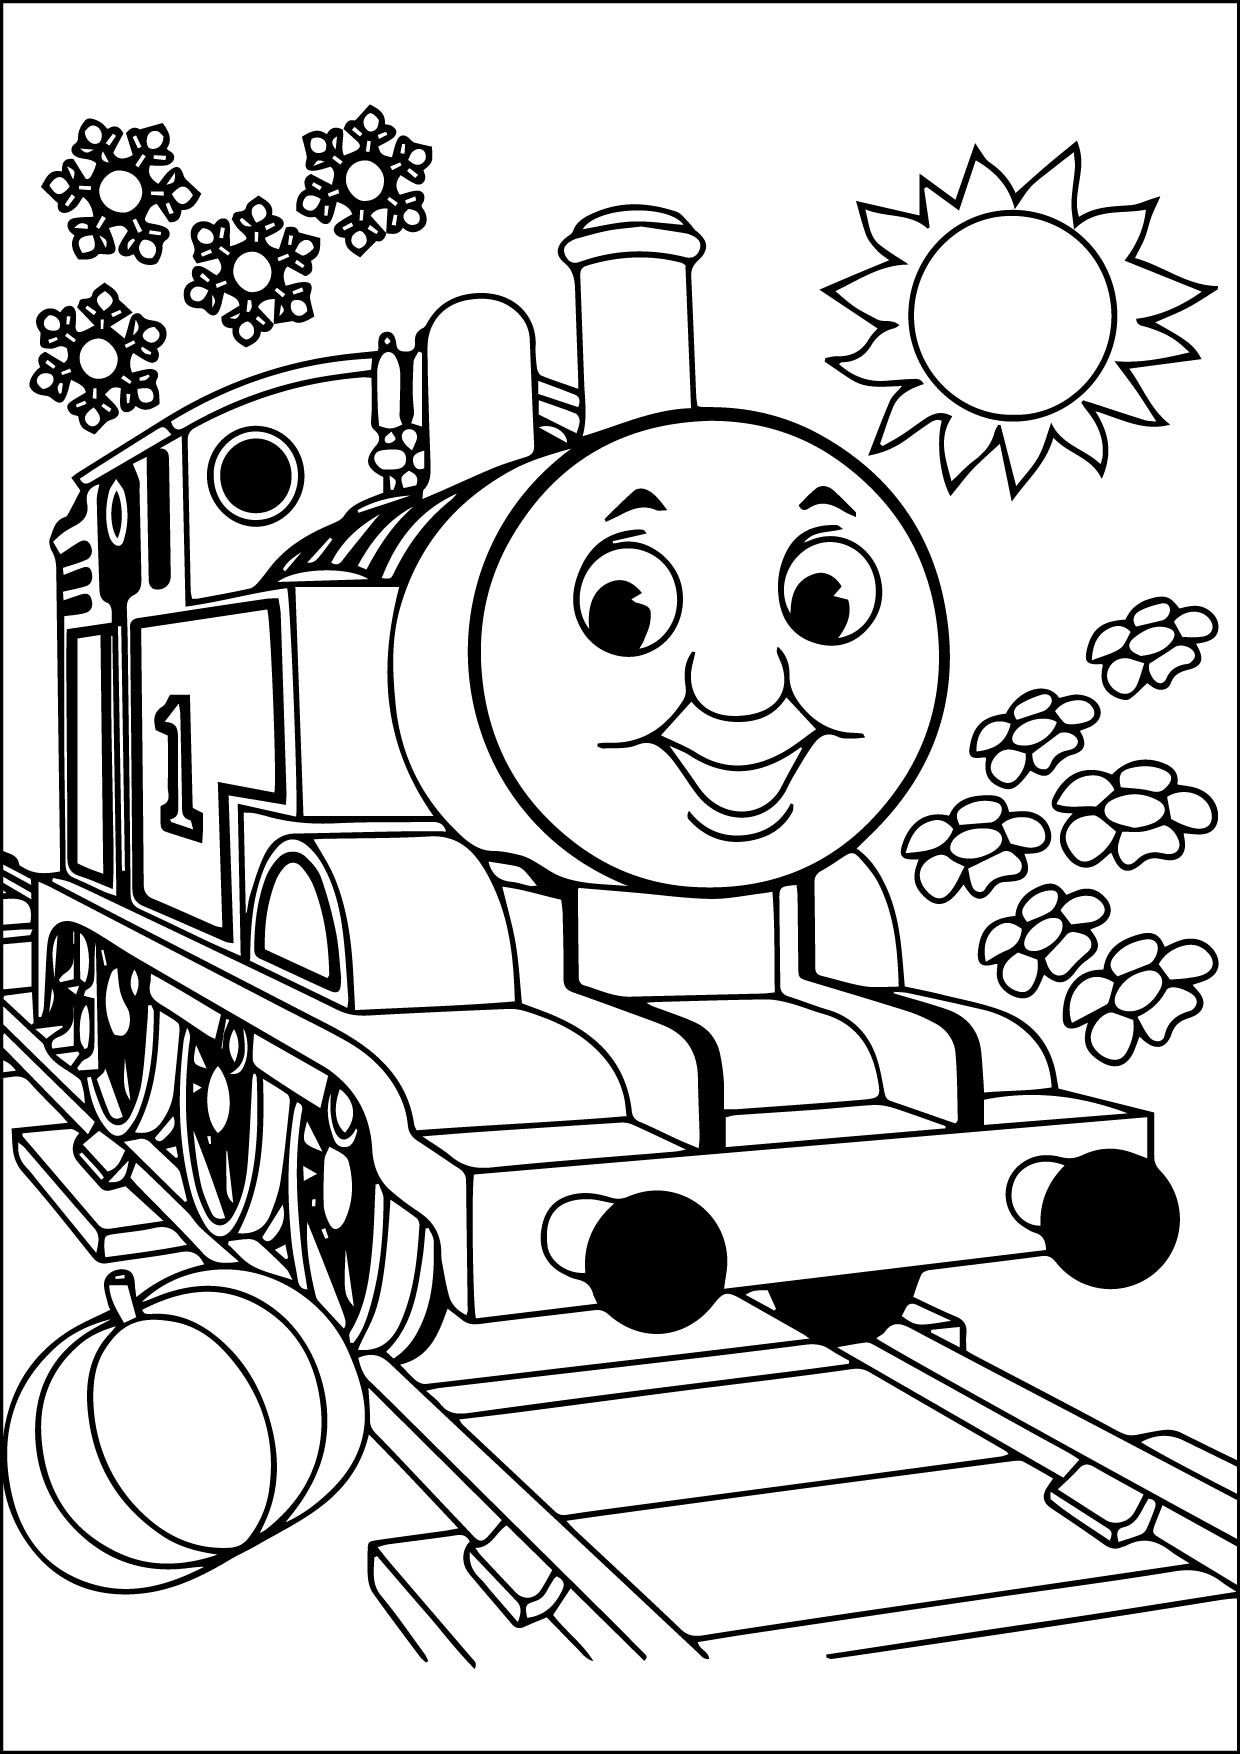 awesome Coloring Page 10-10-2015_031602-01 | Mcoloring | Pinterest